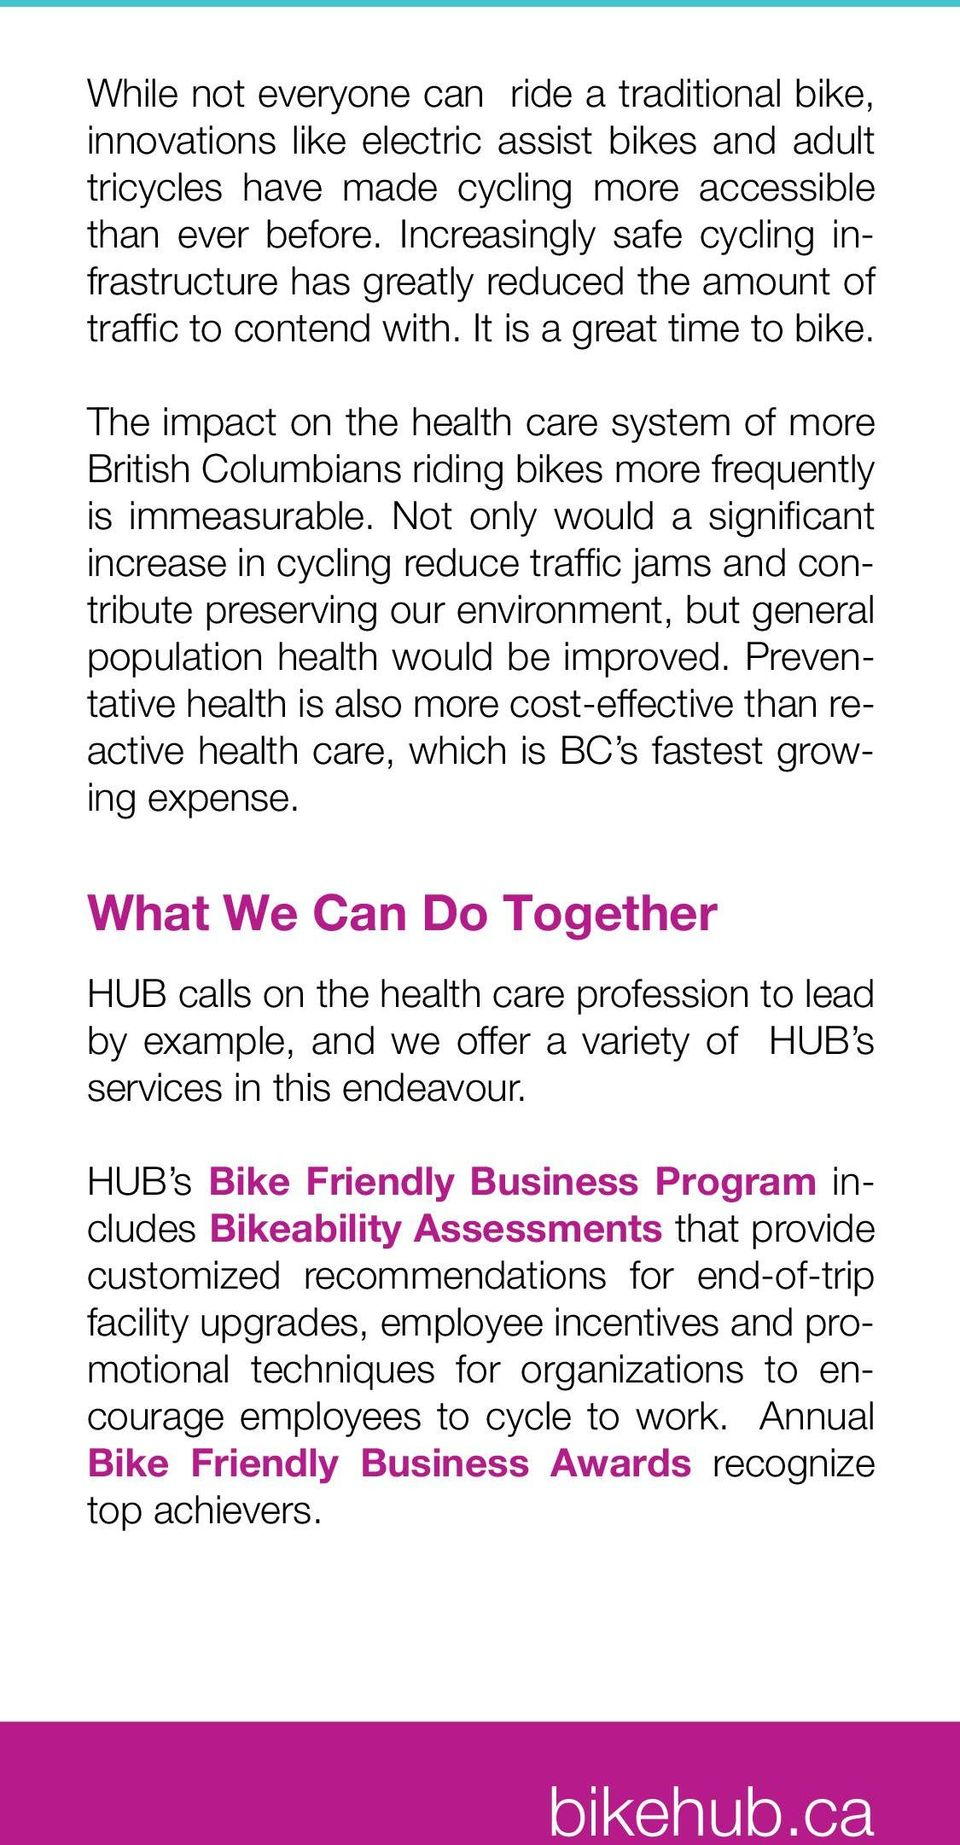 The impact on the health care system of more British Columbians riding bikes more frequently is immeasurable.